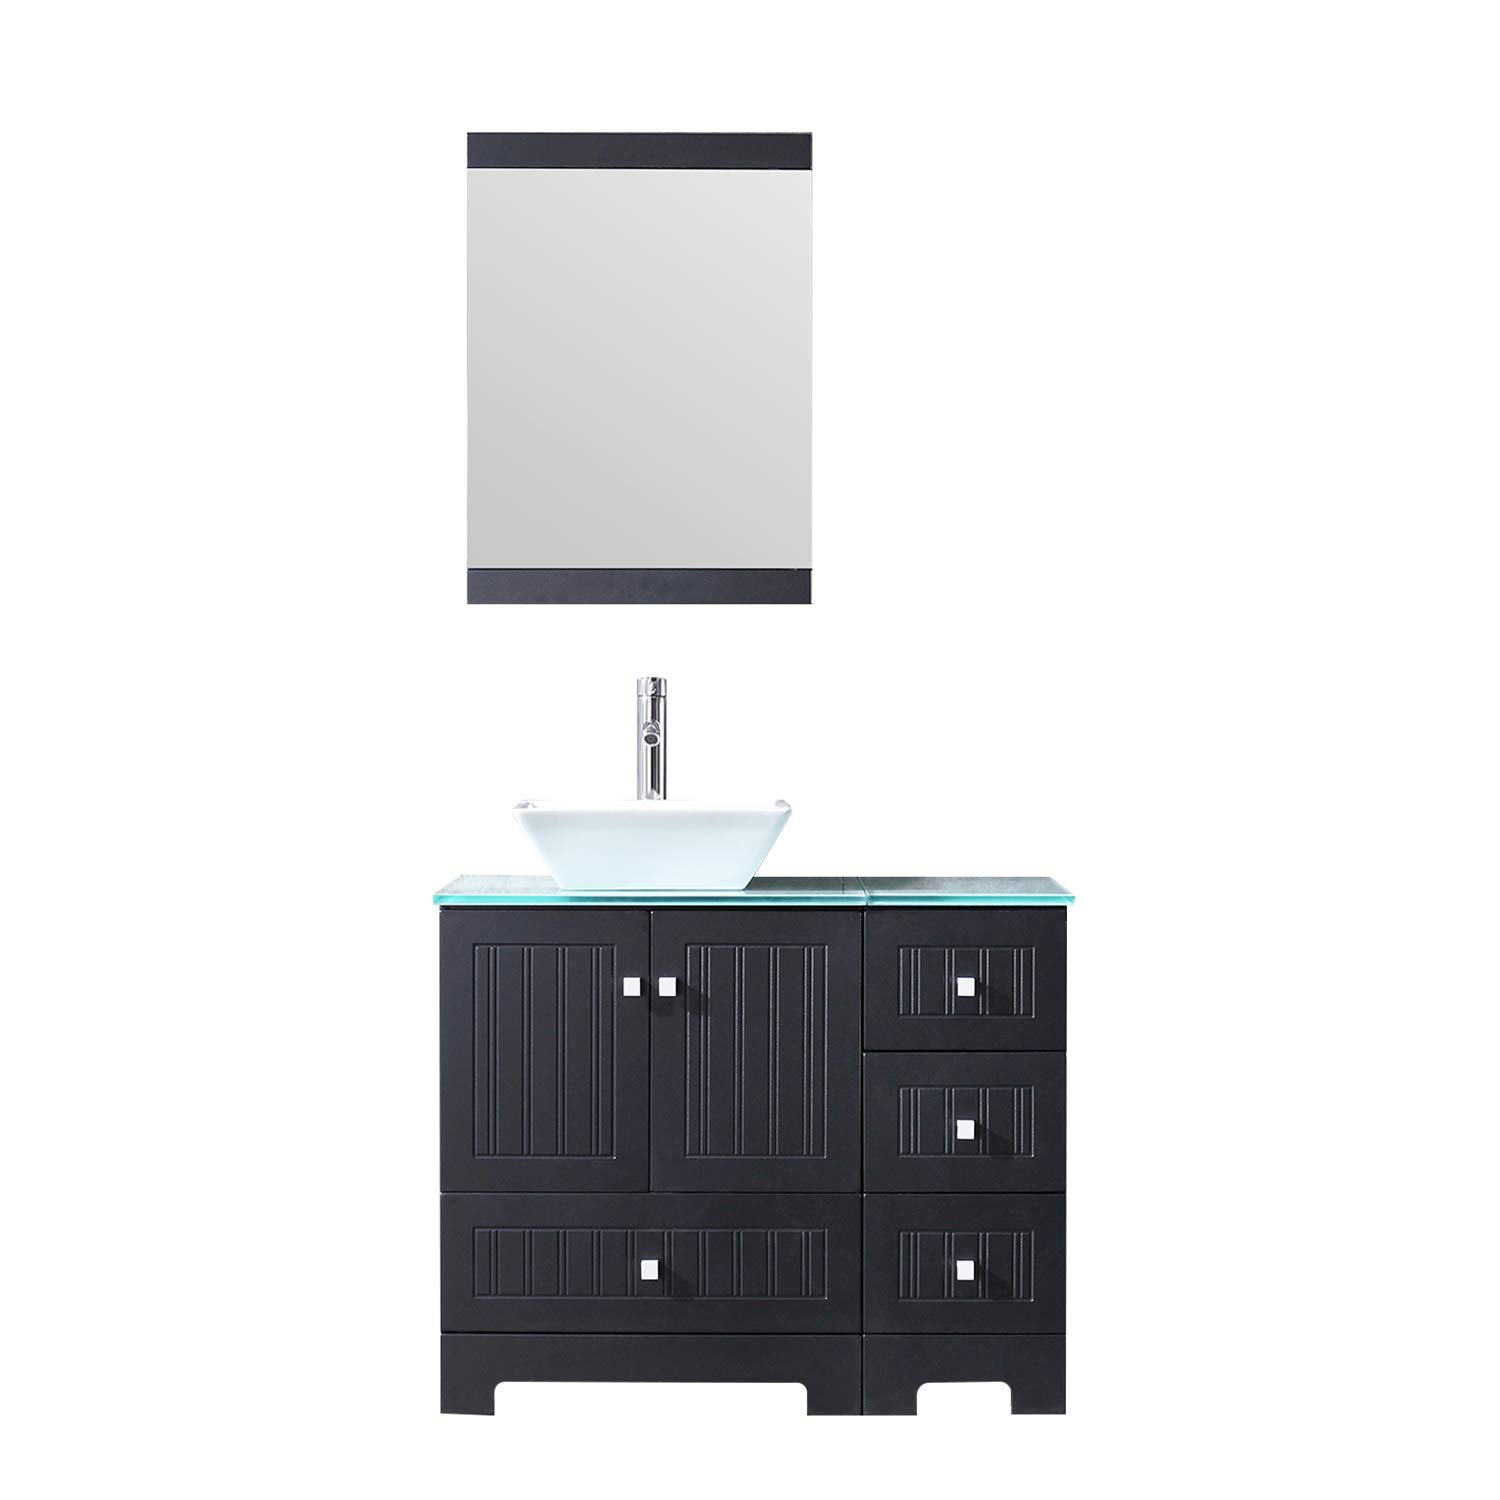 Bathjoy 36 Black Bathroom Vanity Cabinet Single Square Ceramic